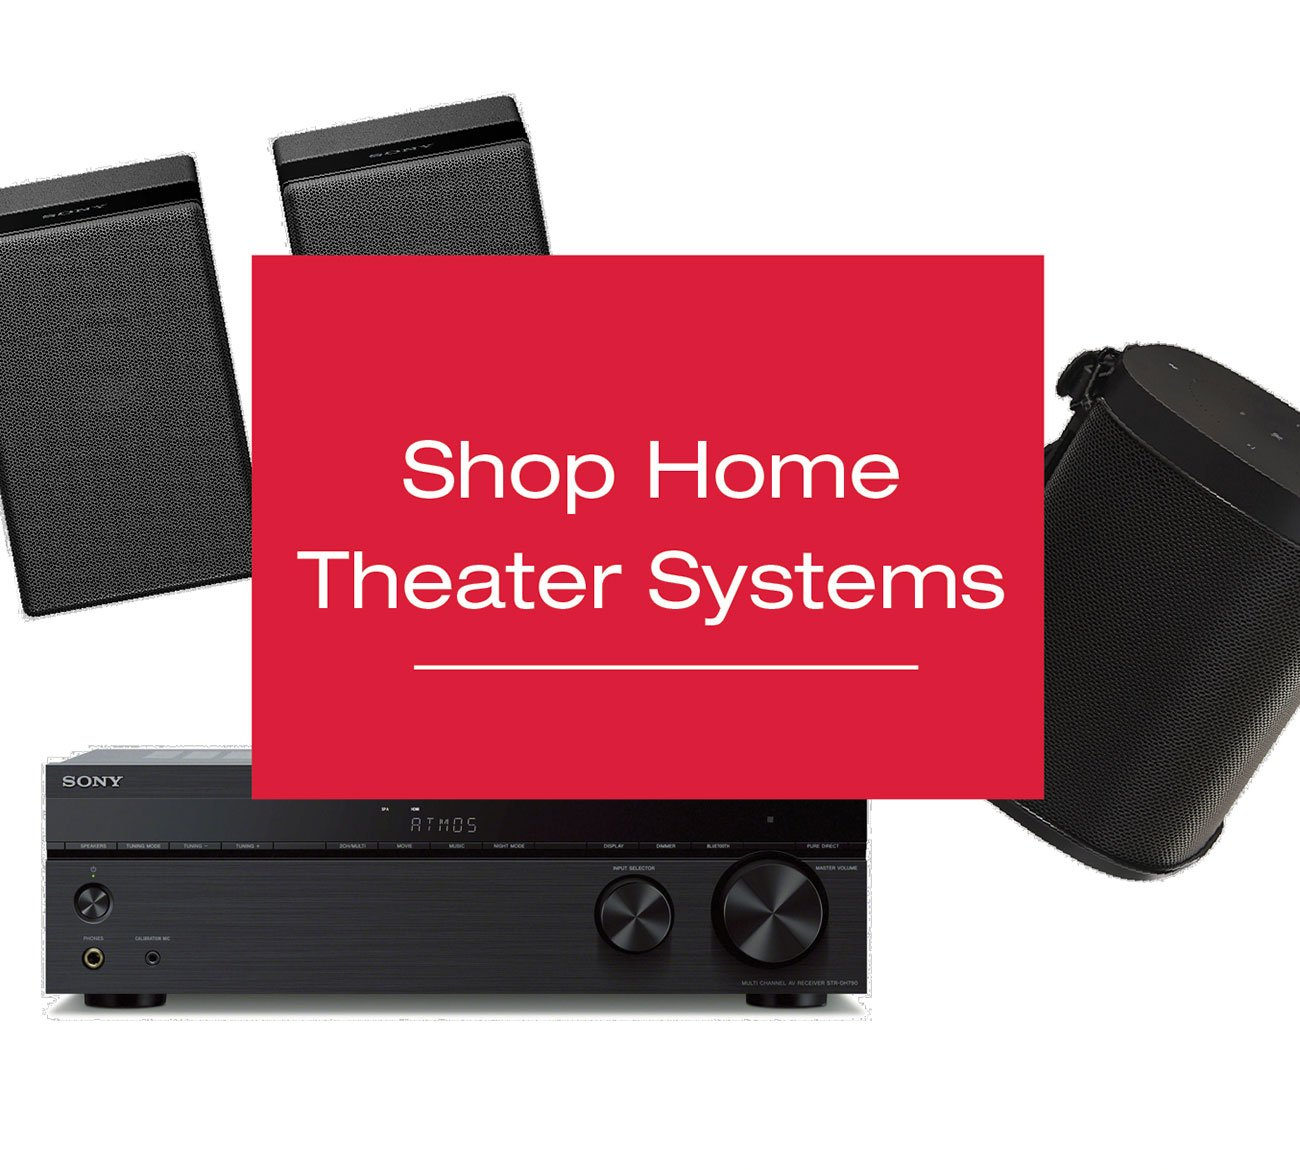 Shop-home-theater-systems